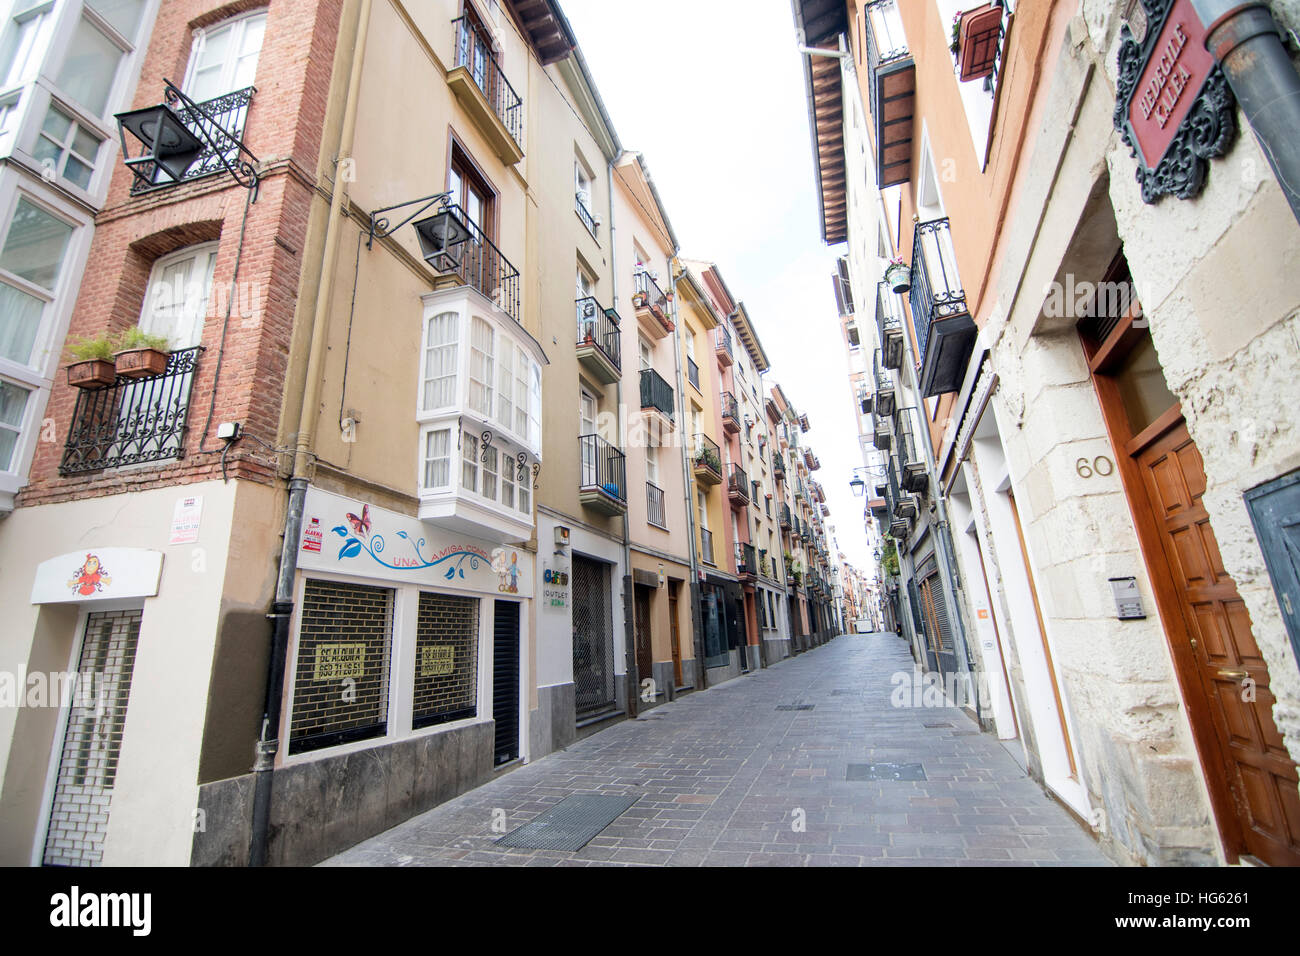 A street of Vitoria, Spain. - Stock Image